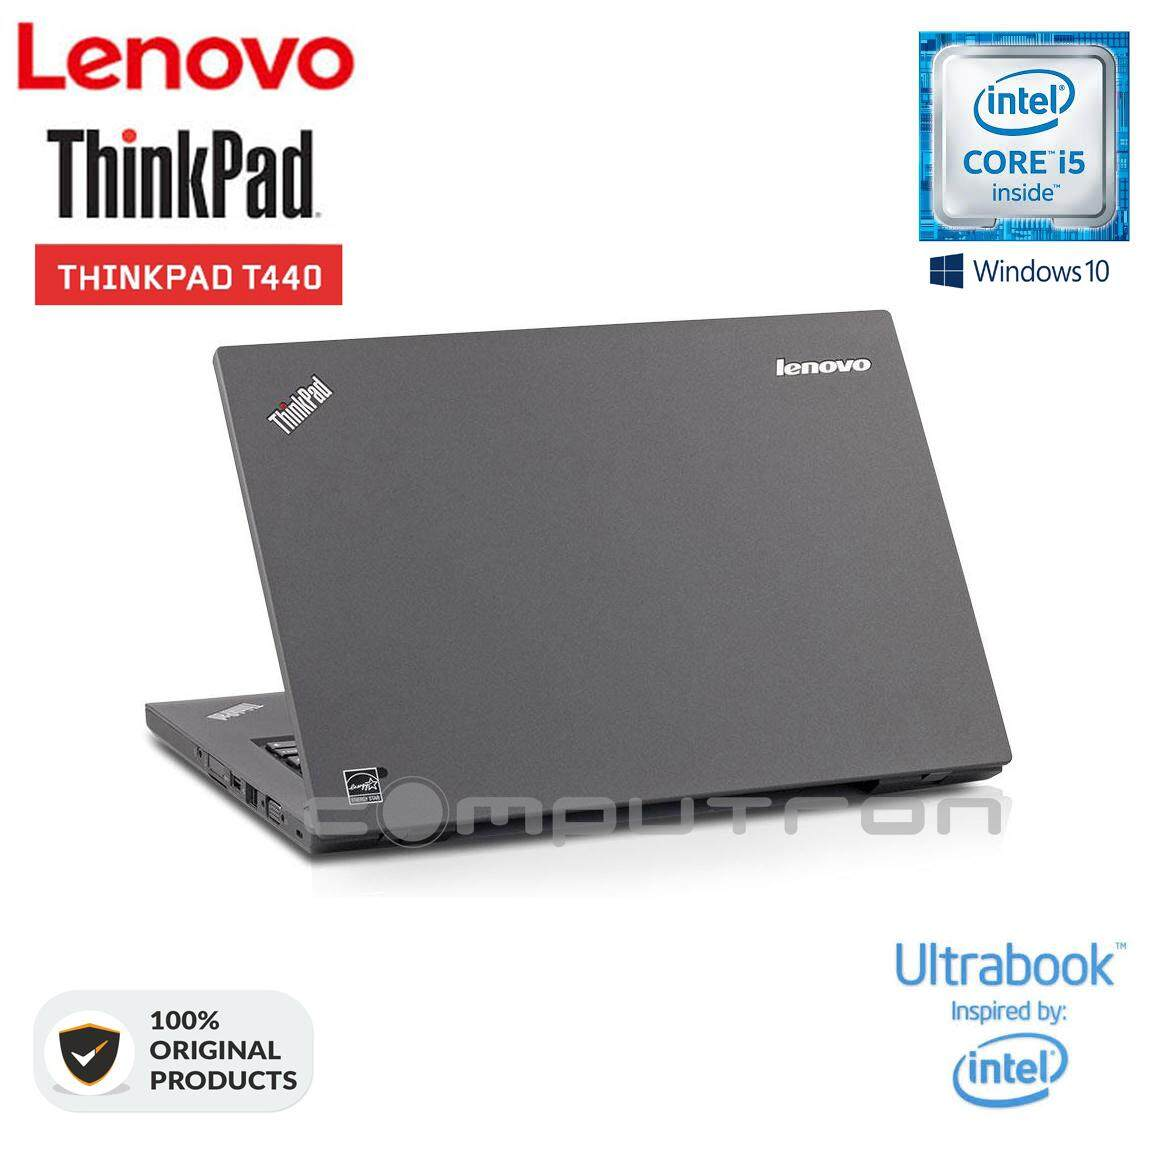 LENOVO THINKPAD T440 ULTRABOOK CORE I5 | 8GB | 1TB HDD | 1 YEAR WARRANTY [ORIGINAL REMANUFACTURED] Malaysia